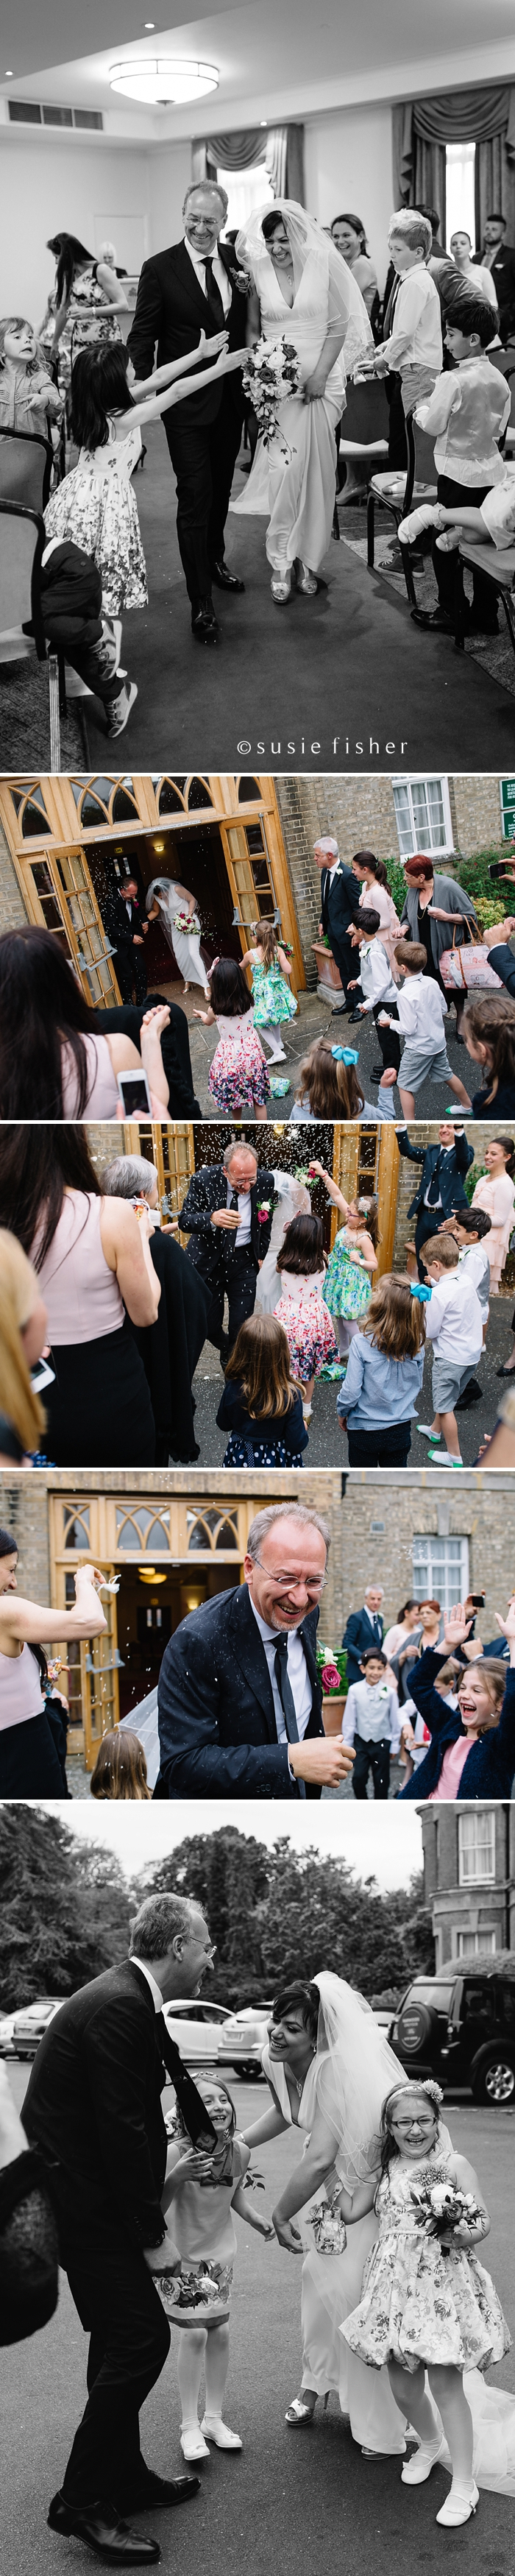 Kingston Surrey Wedding Photographer_Susie Fisher.jpg